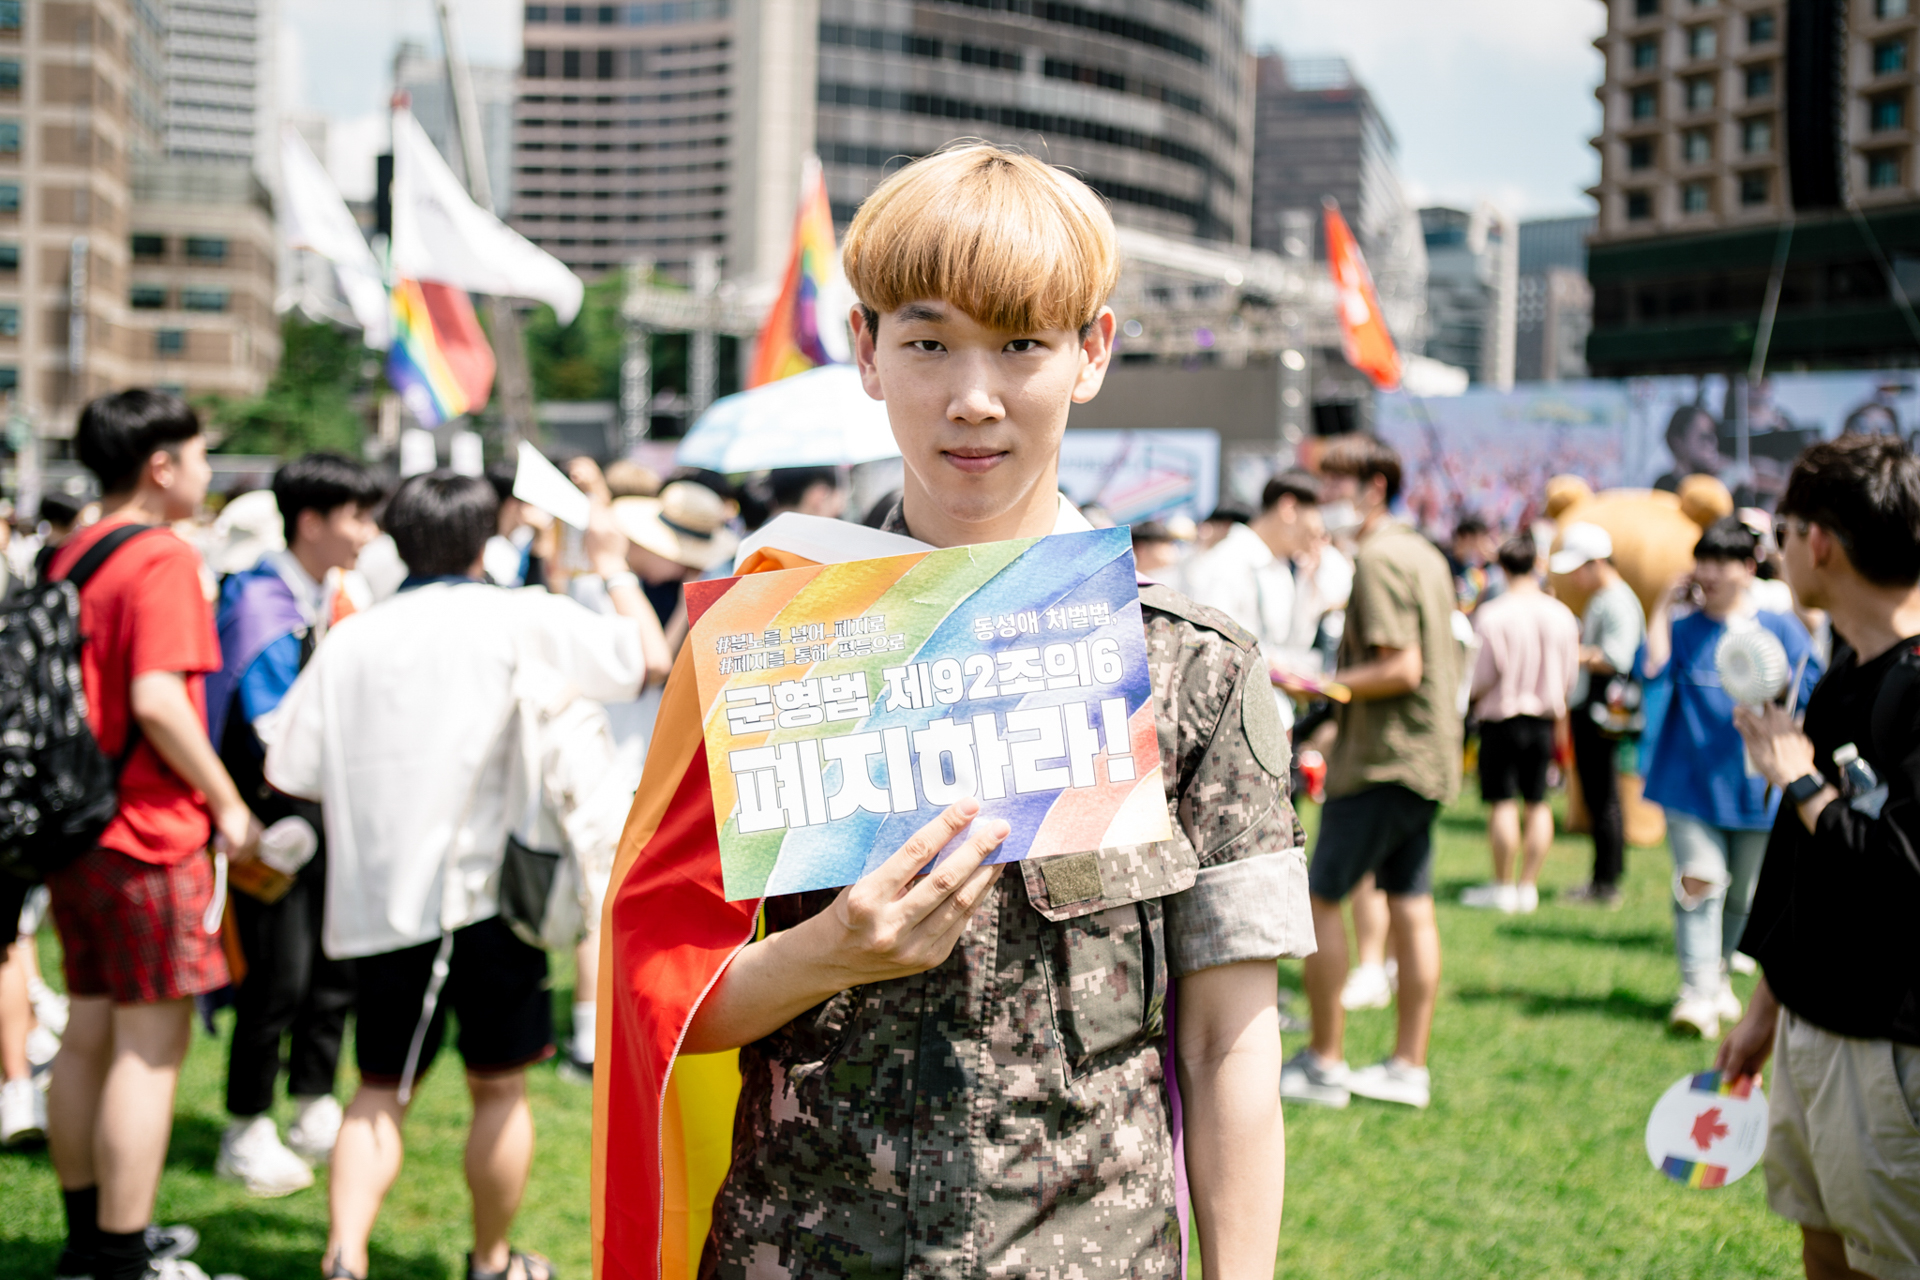 Seoul Queer Pride 2018, South Korea (2018)